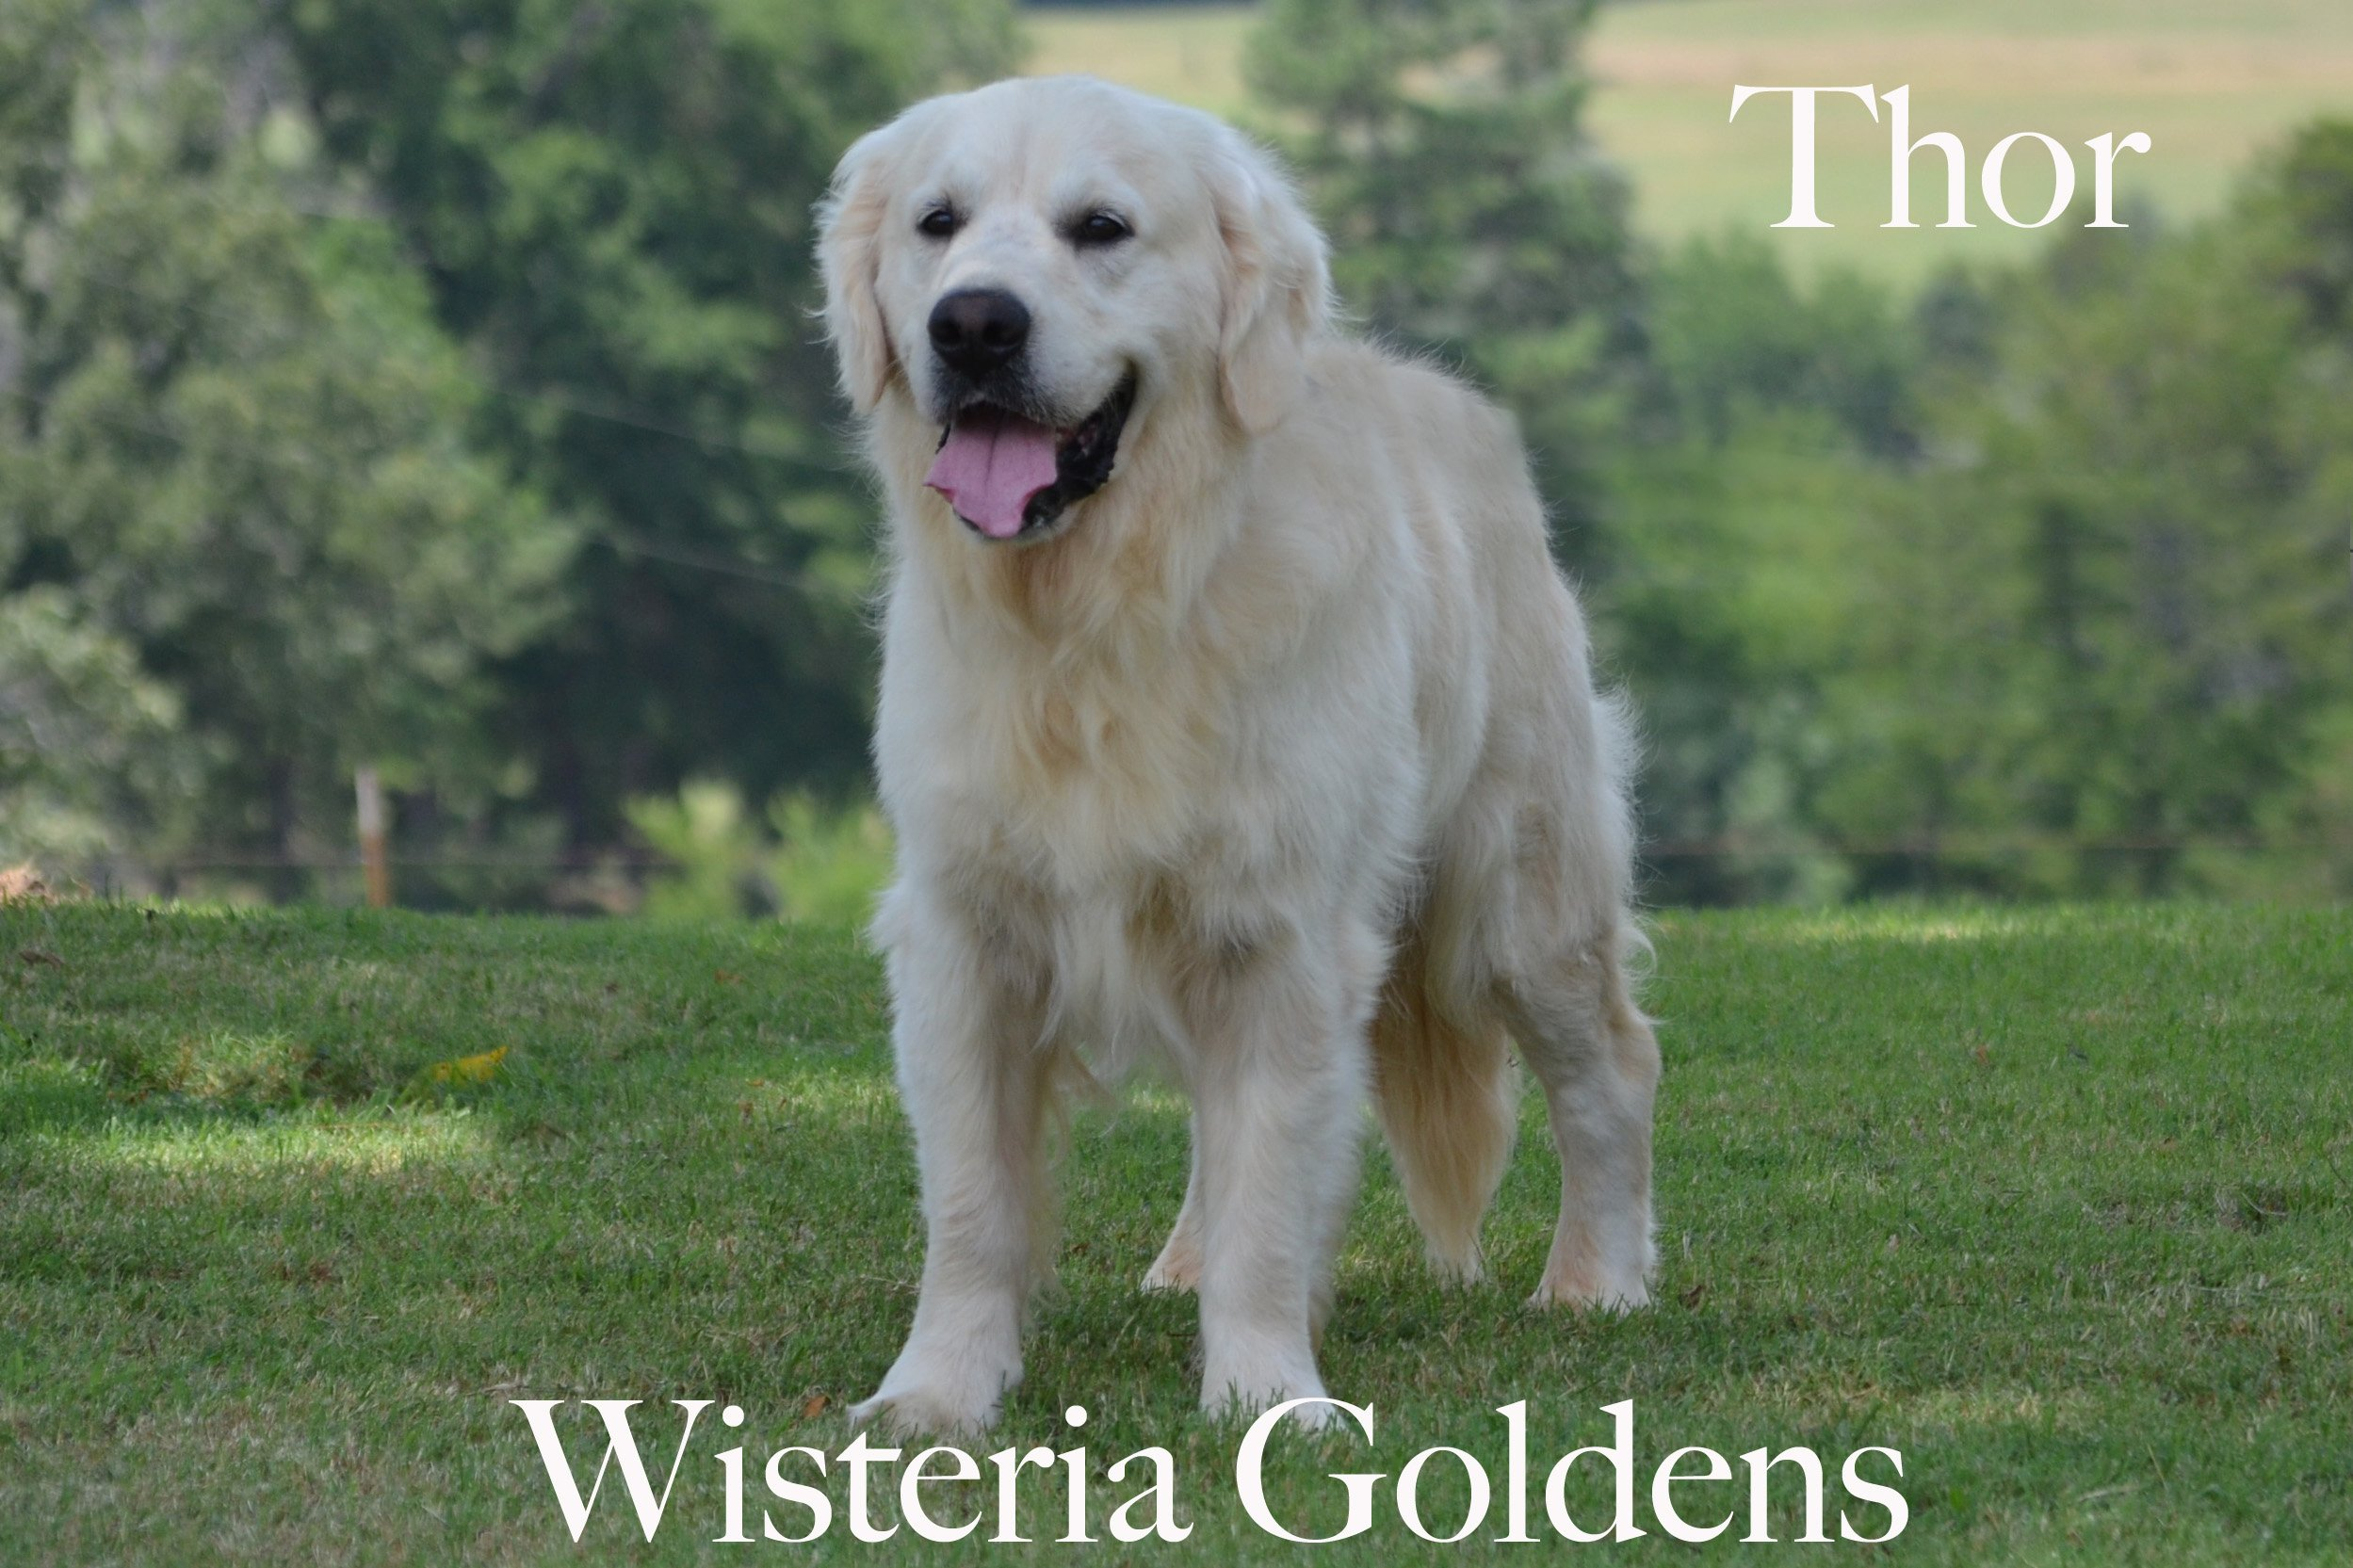 Thor-0459-thor-full-english-creme-golden-retrievers-wisteria-goldens